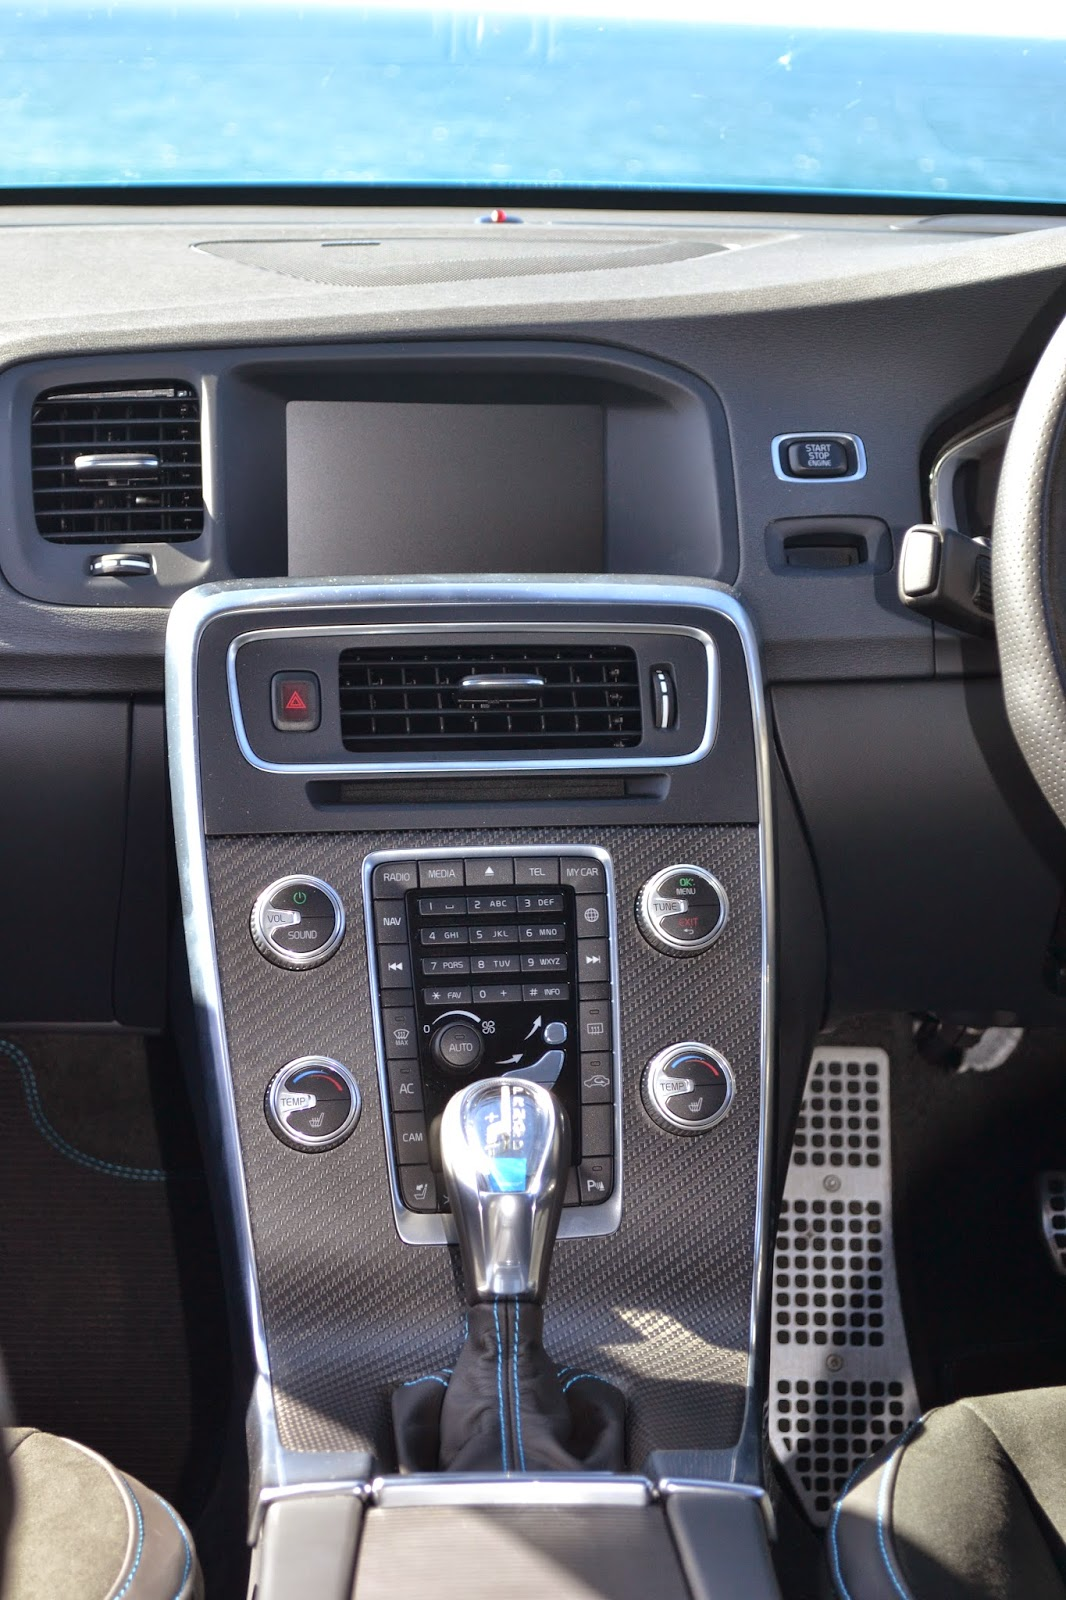 Another look at the centre console